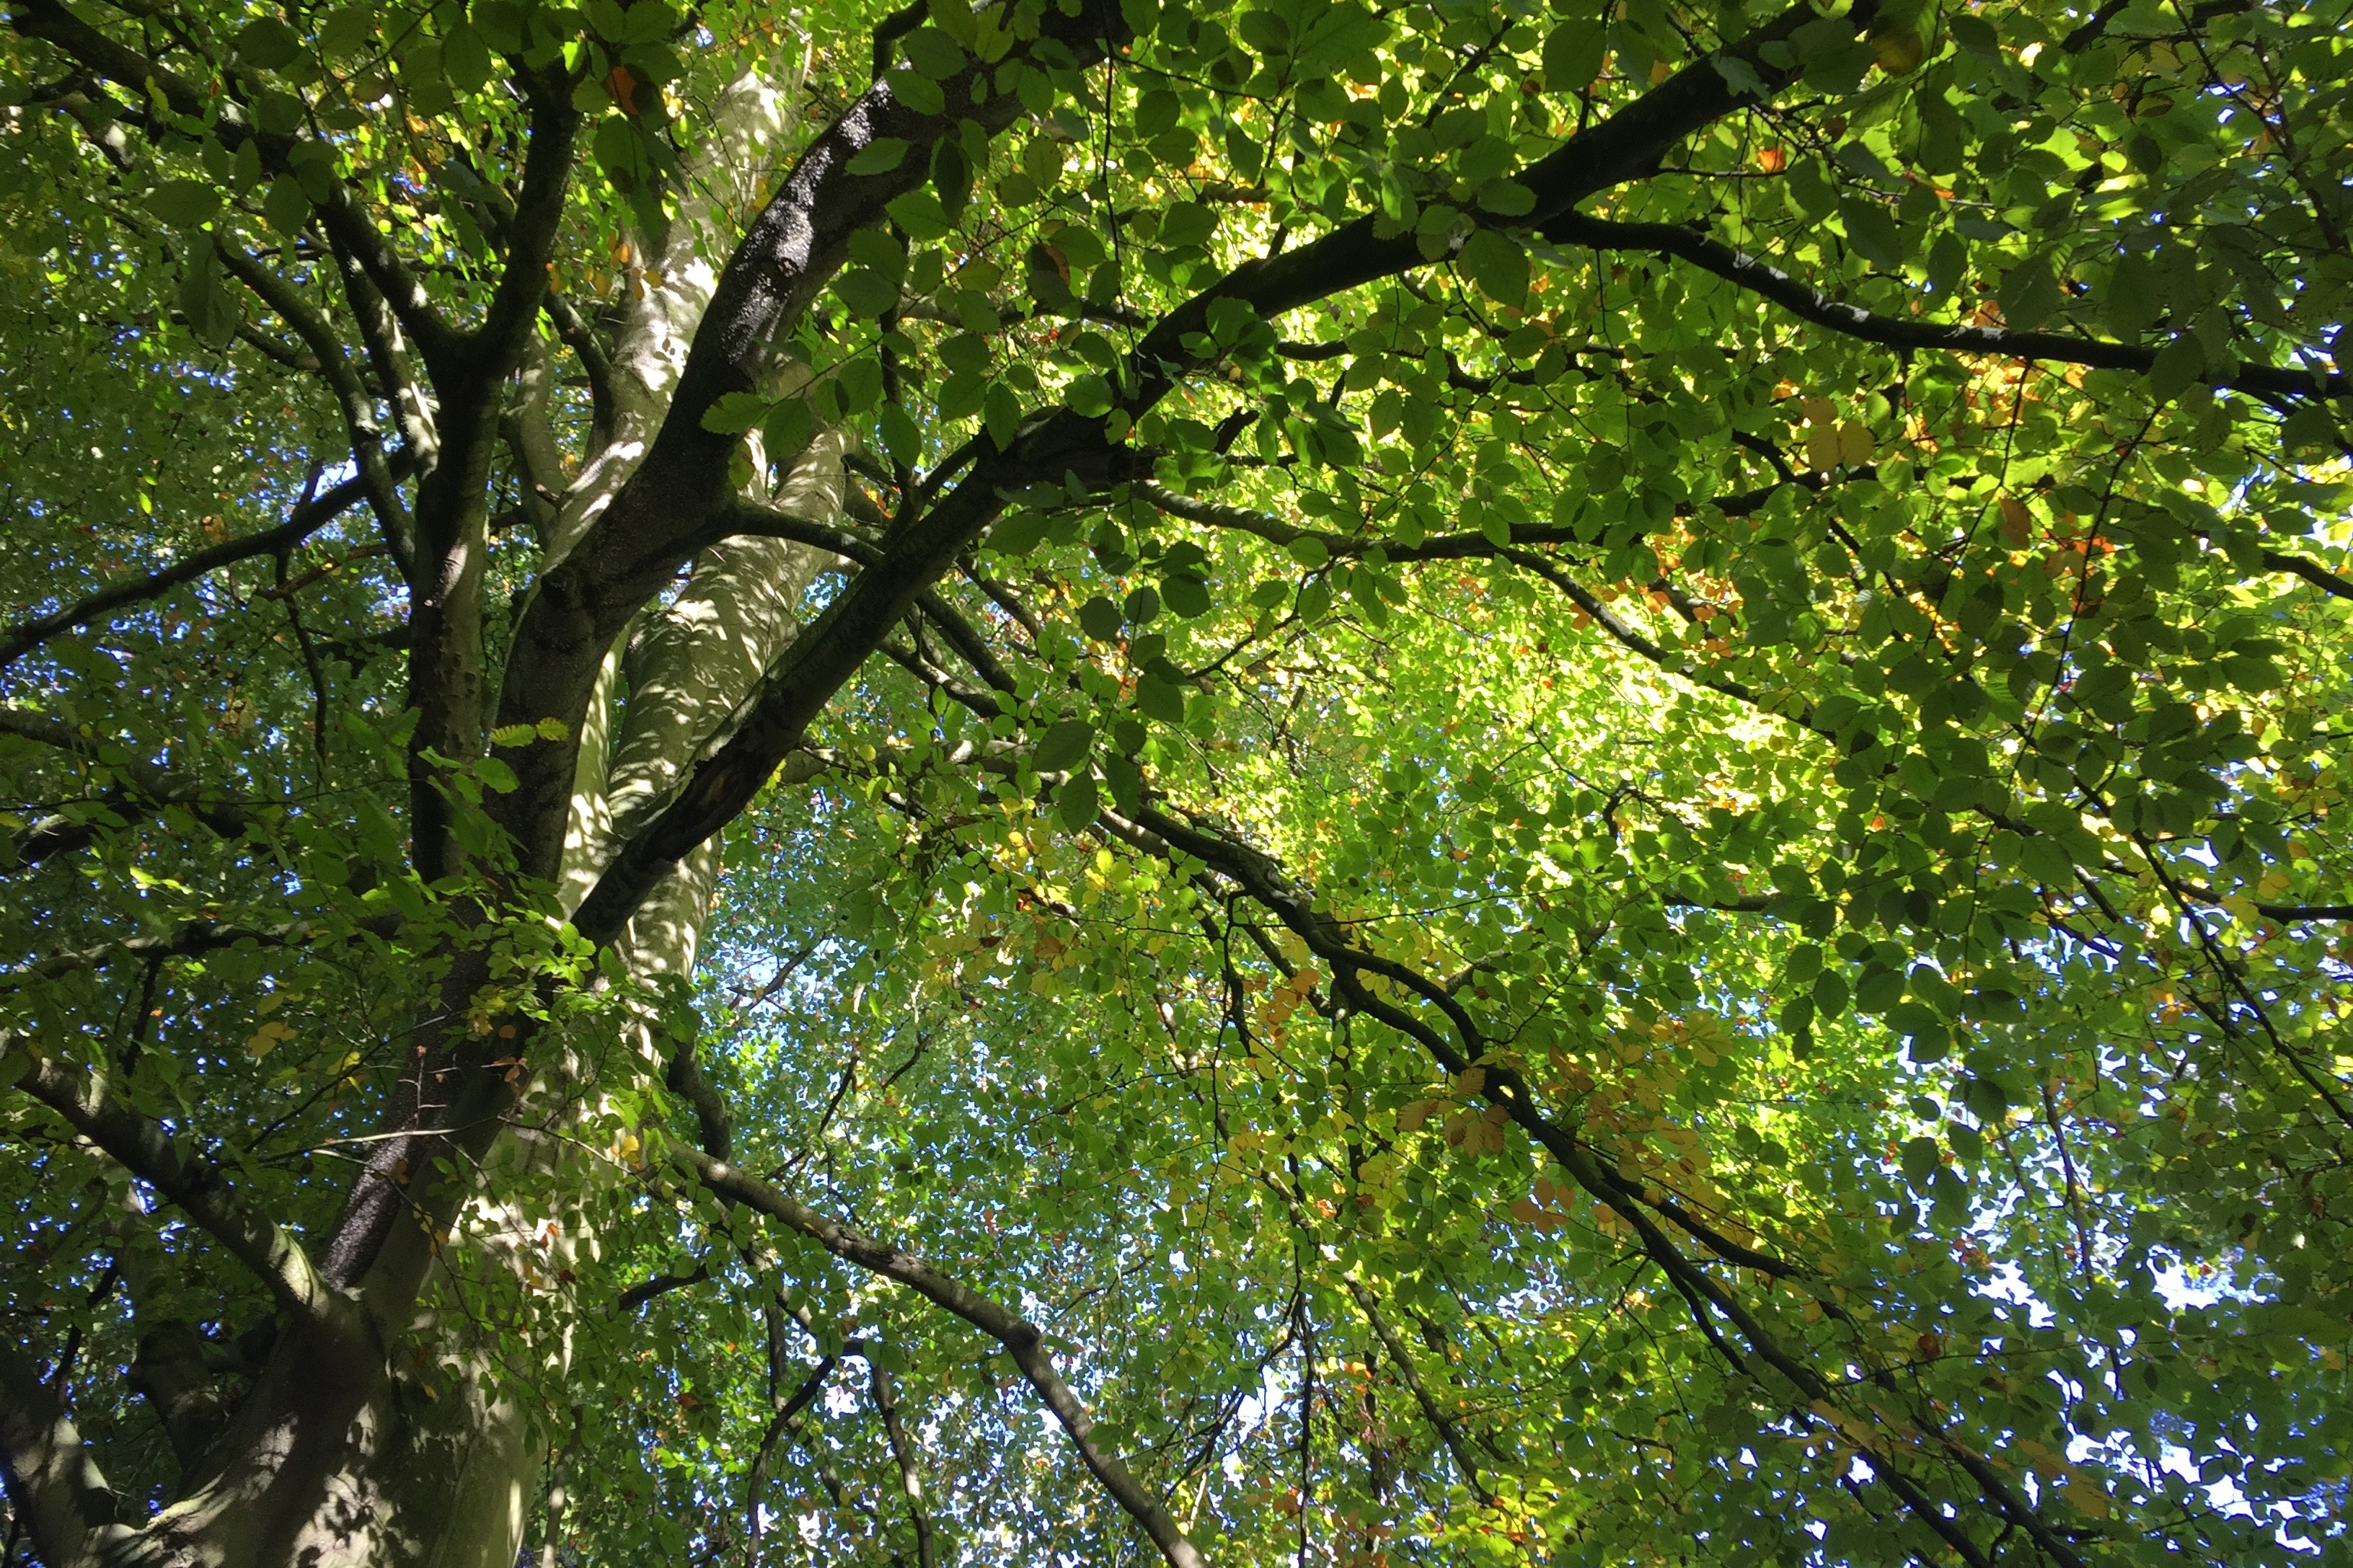 An upwards view of large tree with many green leaves